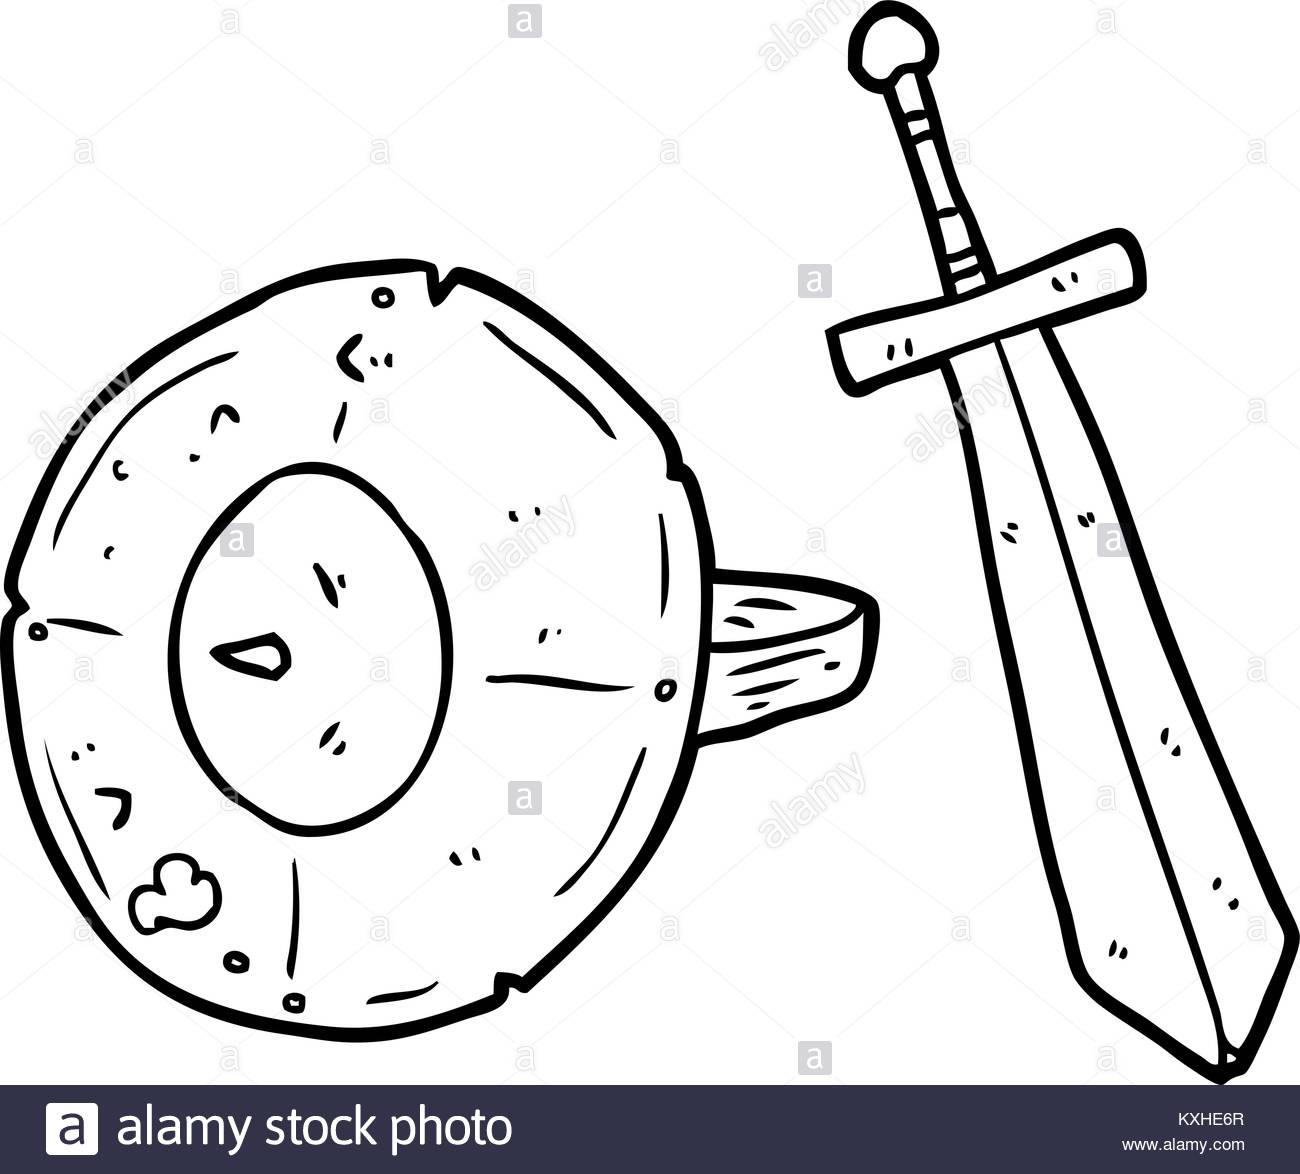 1300x1174 Line Drawing Of A Old Gladiator Shield And Sword Stock Vector Art